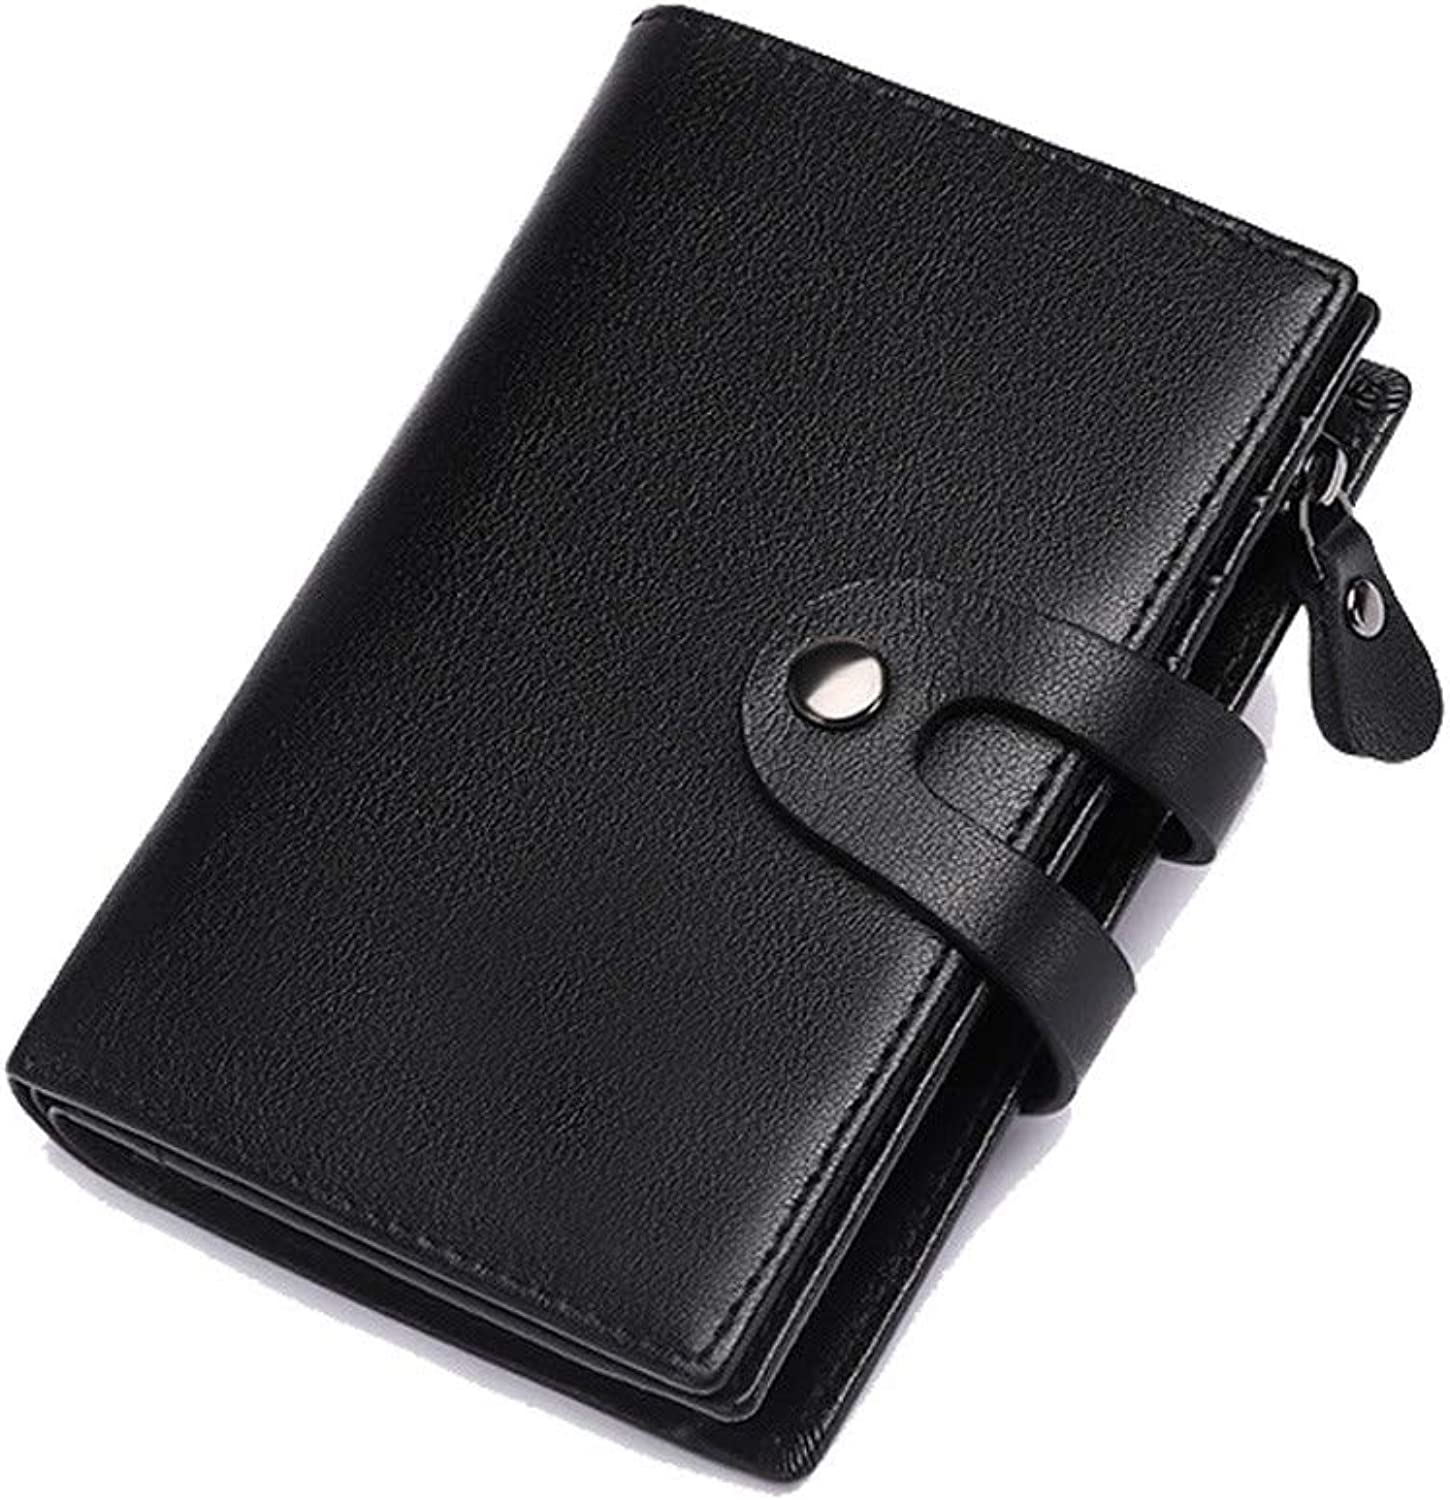 Men's and Women's Leather Wallets, MultiPurpose Short Wallet, Retro greenical Driver's License Zipper Pocket Purse,Black